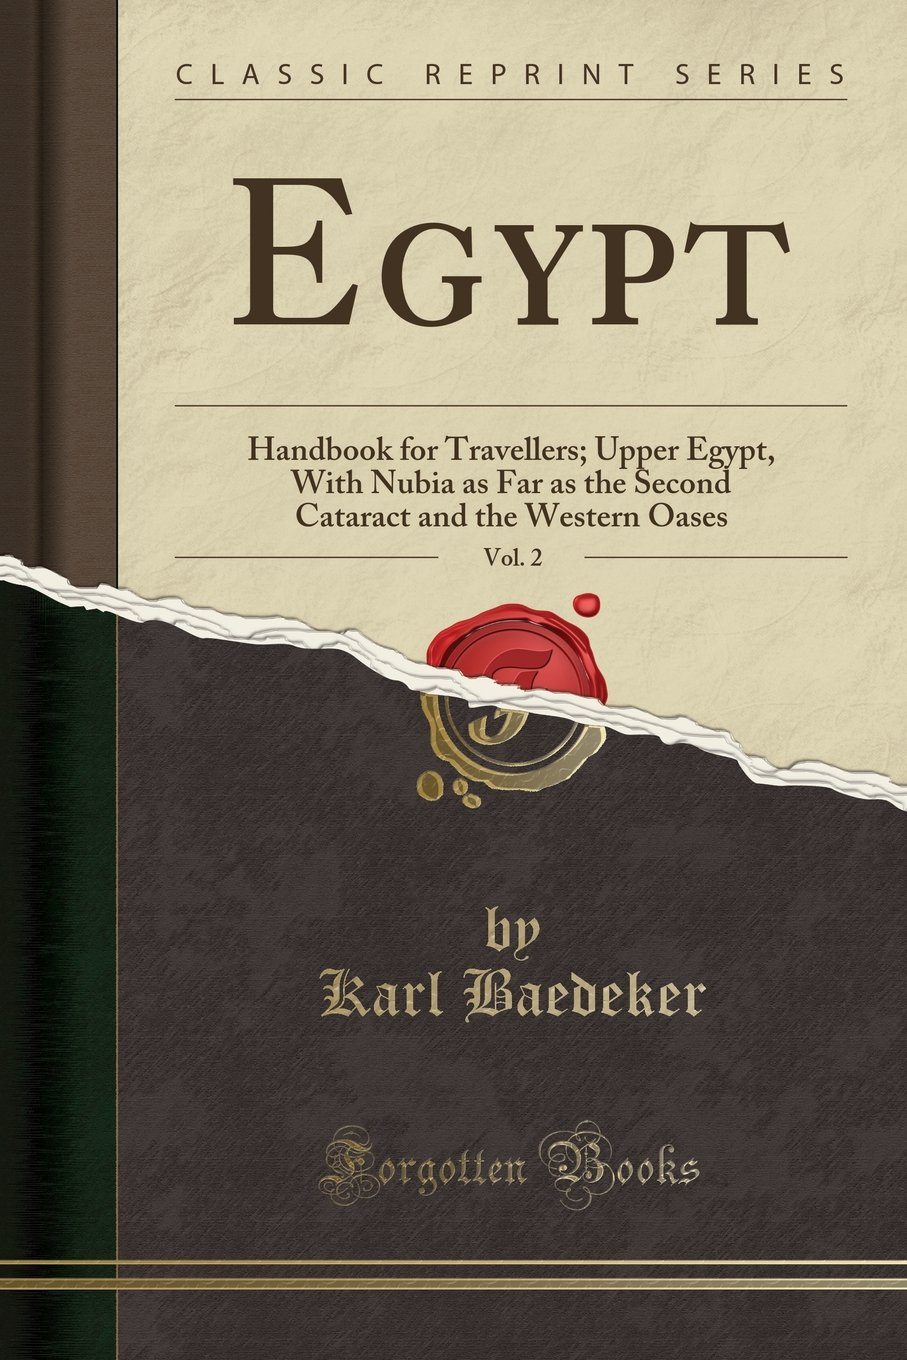 Egypt, Vol. 2: Handbook for Travellers; Upper Egypt, With Nubia as Far as the Second Cataract and the Western Oases (Classic Reprint)